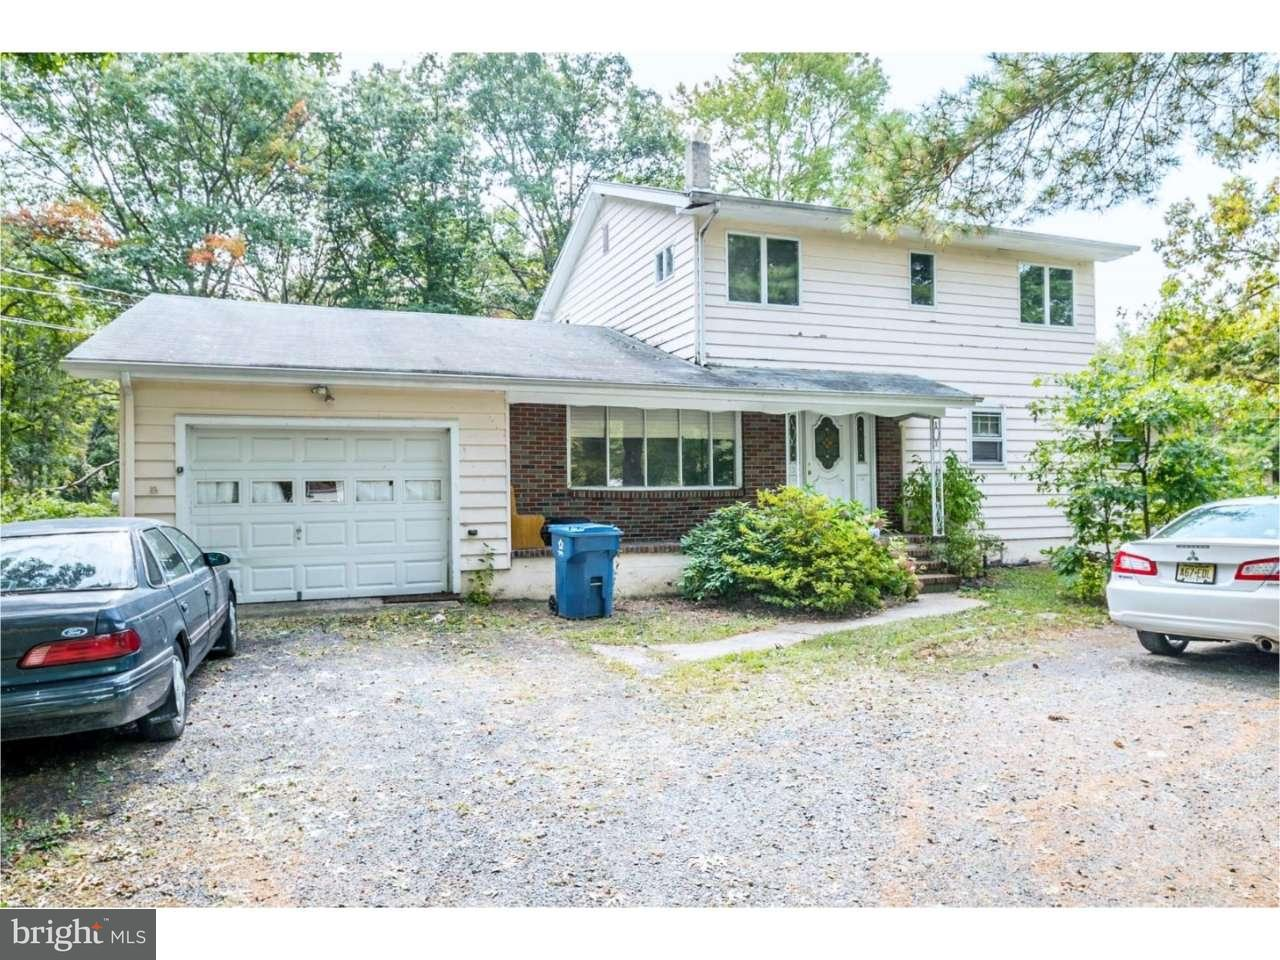 Additional photo for property listing at 405 SPOTSWOOD GRAVEL HILL Road  Monroe, Nueva Jersey 08831 Estados Unidos